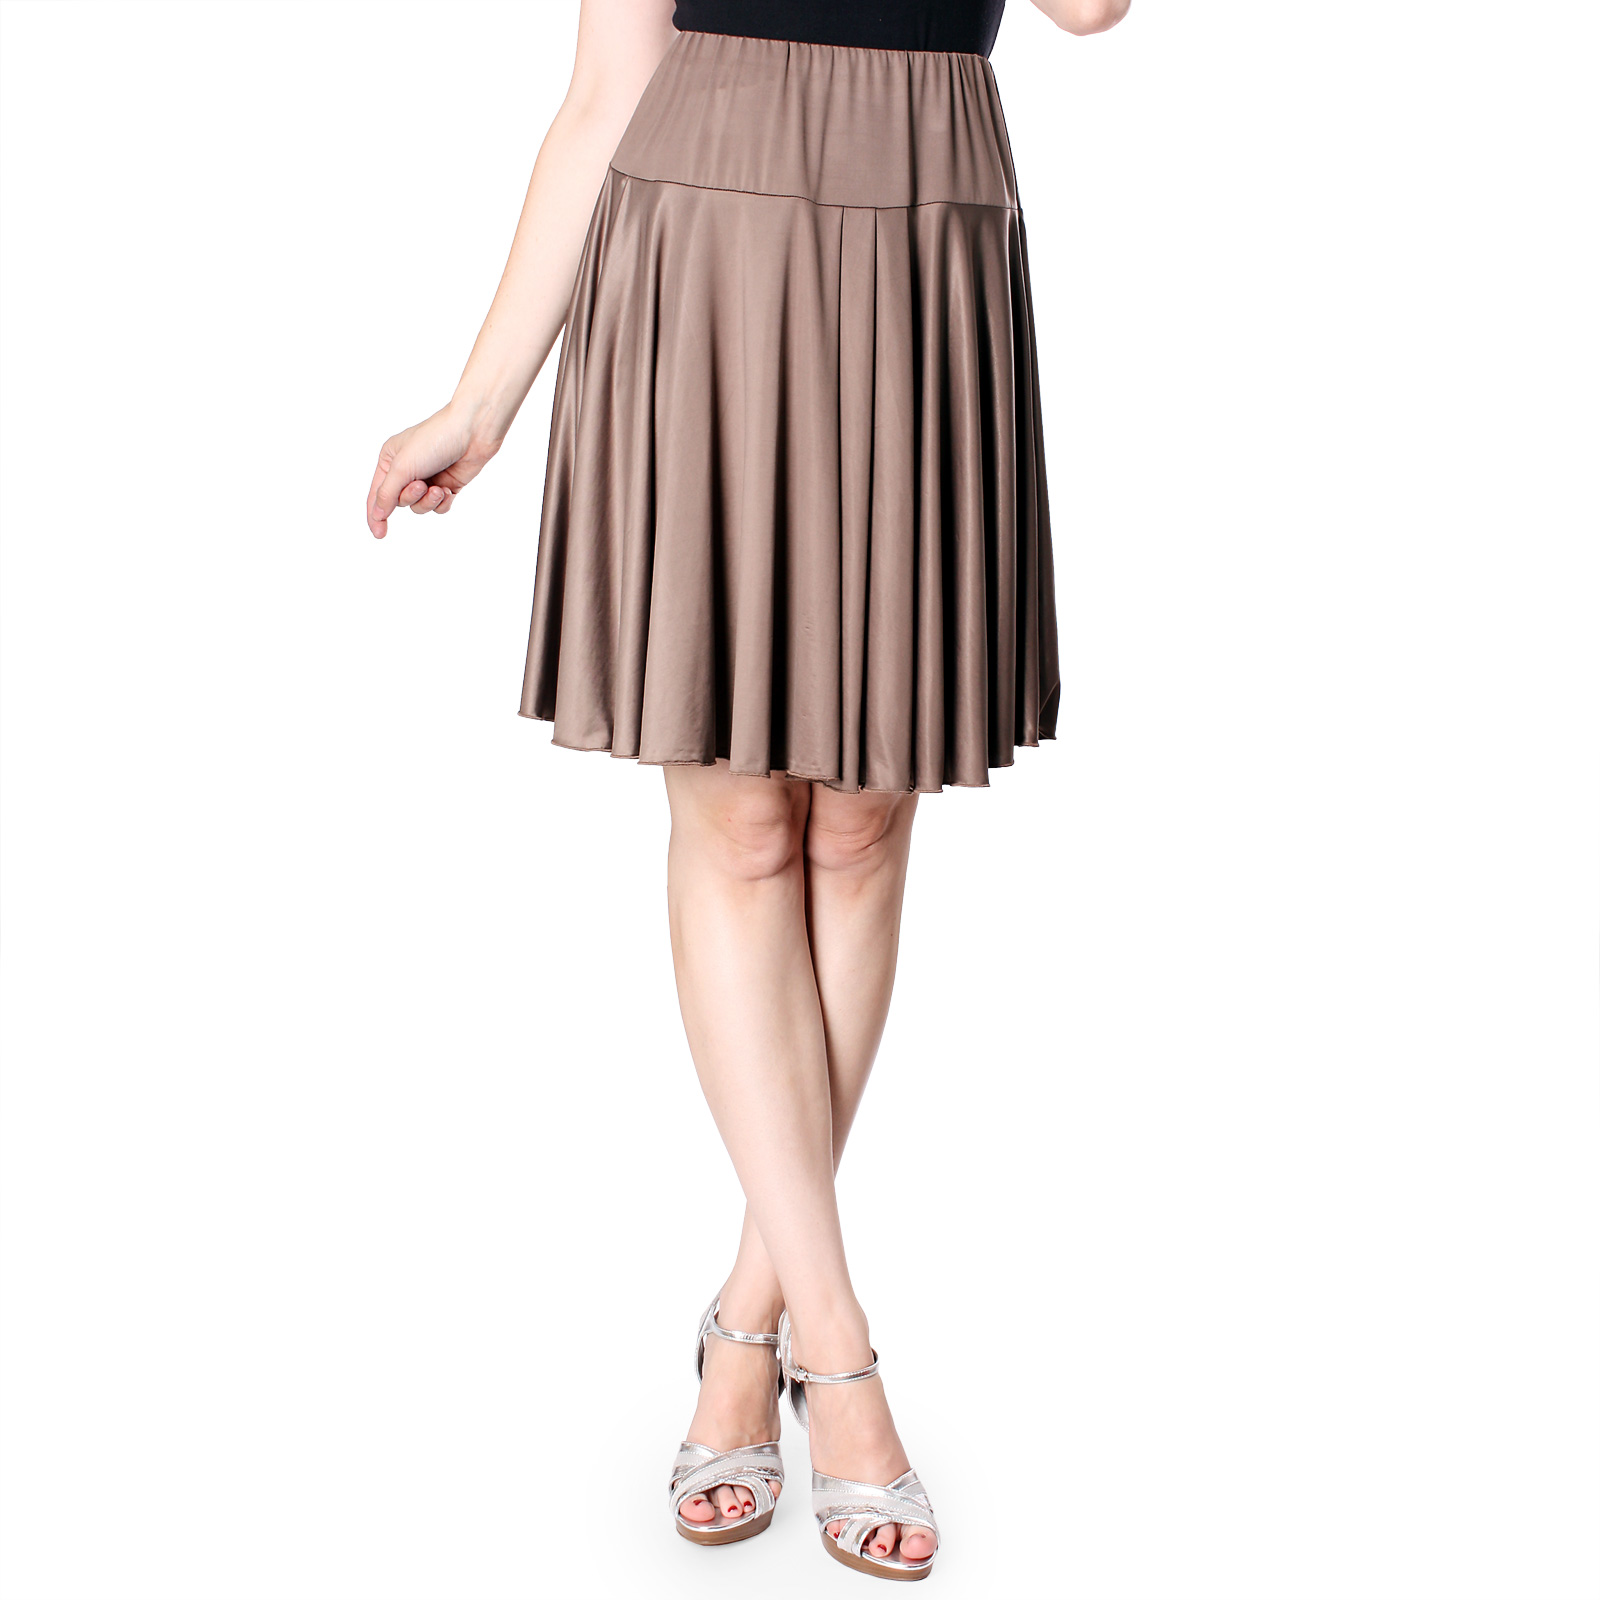 Evanese Women's Shiny Venezian Yoke Skirt with Uneven Pleats at Sears.com